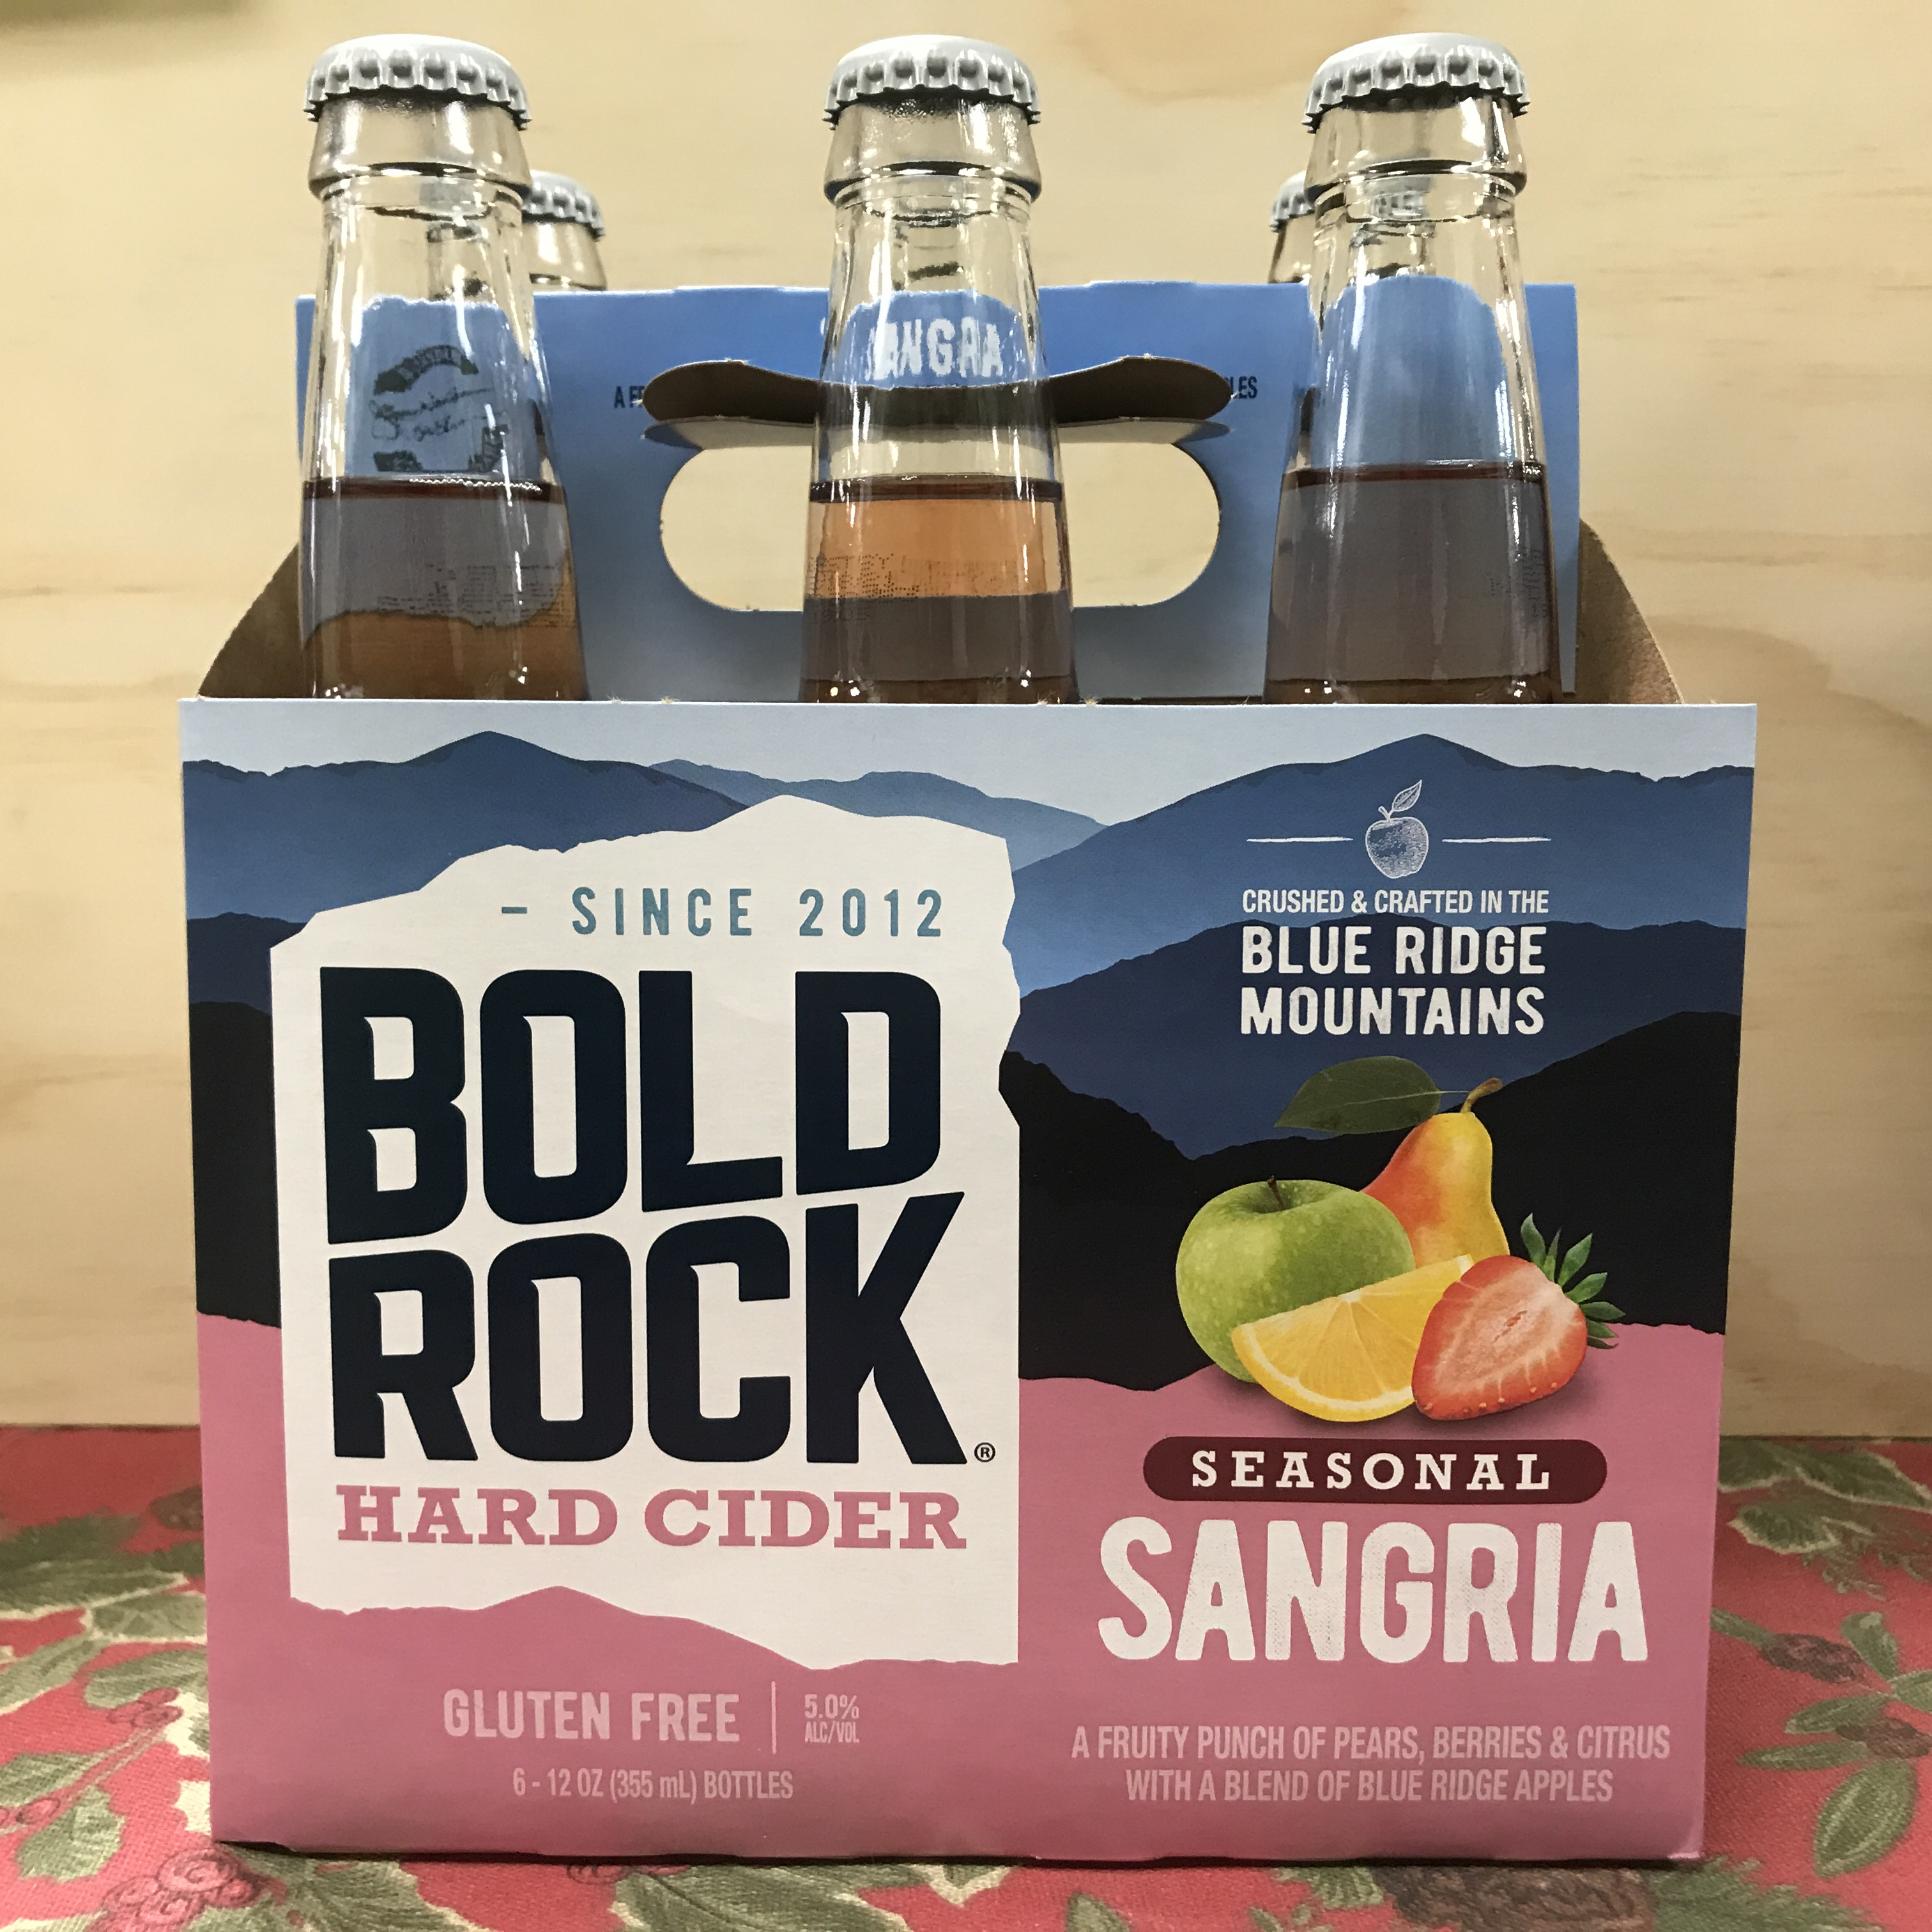 Bold Rock Seasonal Sangria Hard Cider 6 x 12oz bottles